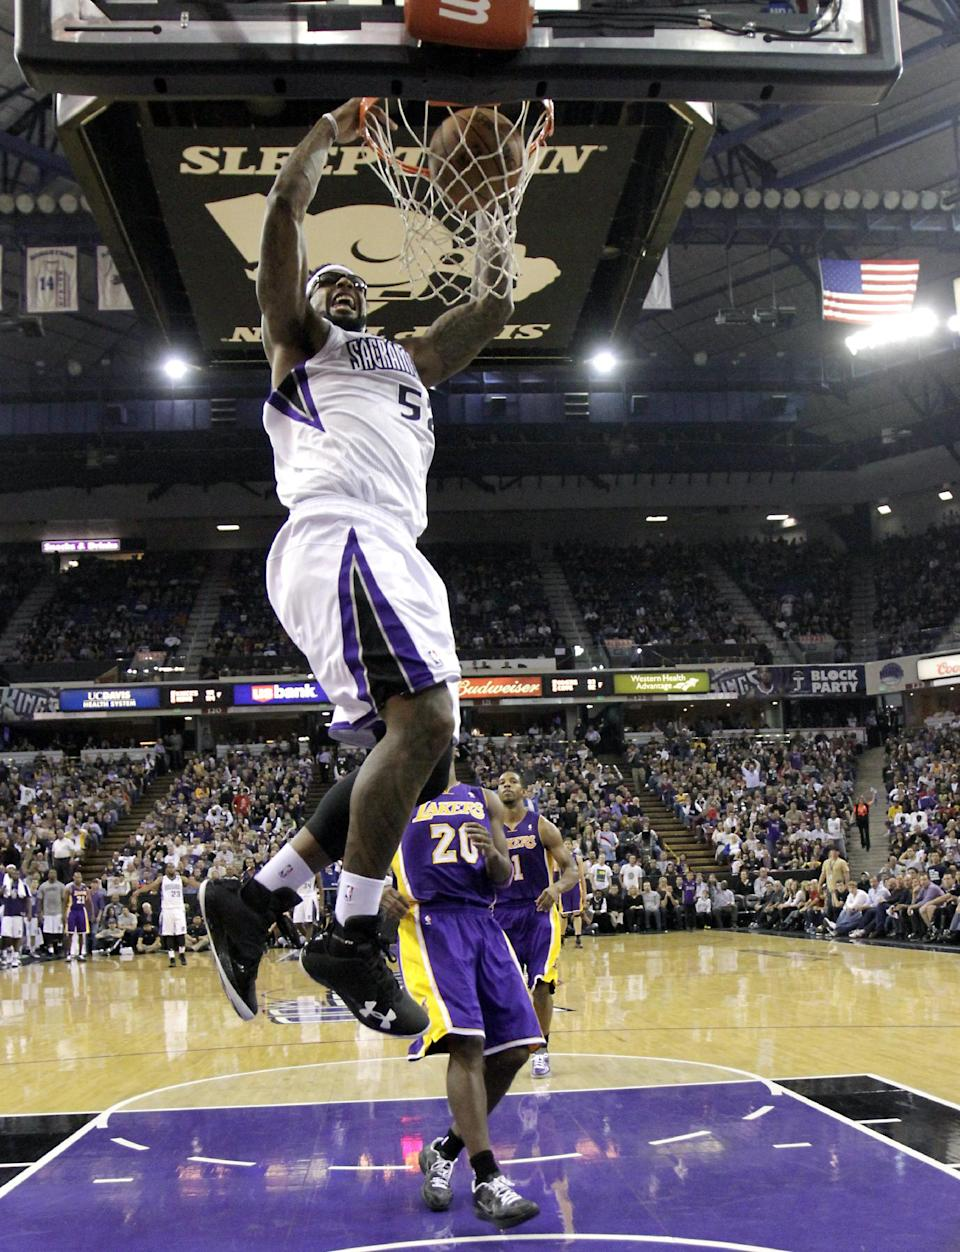 Sacramento Kings forward James Johnson, let, dunks over Los Angeles Lakers guard Jodie Meeks, right, during the second half of an NBA basketball game in Sacramento, Calif., Wednesday, Nov. 21, 2012. The Kings won 113-97. (AP Photo/Rich Pedroncelli)